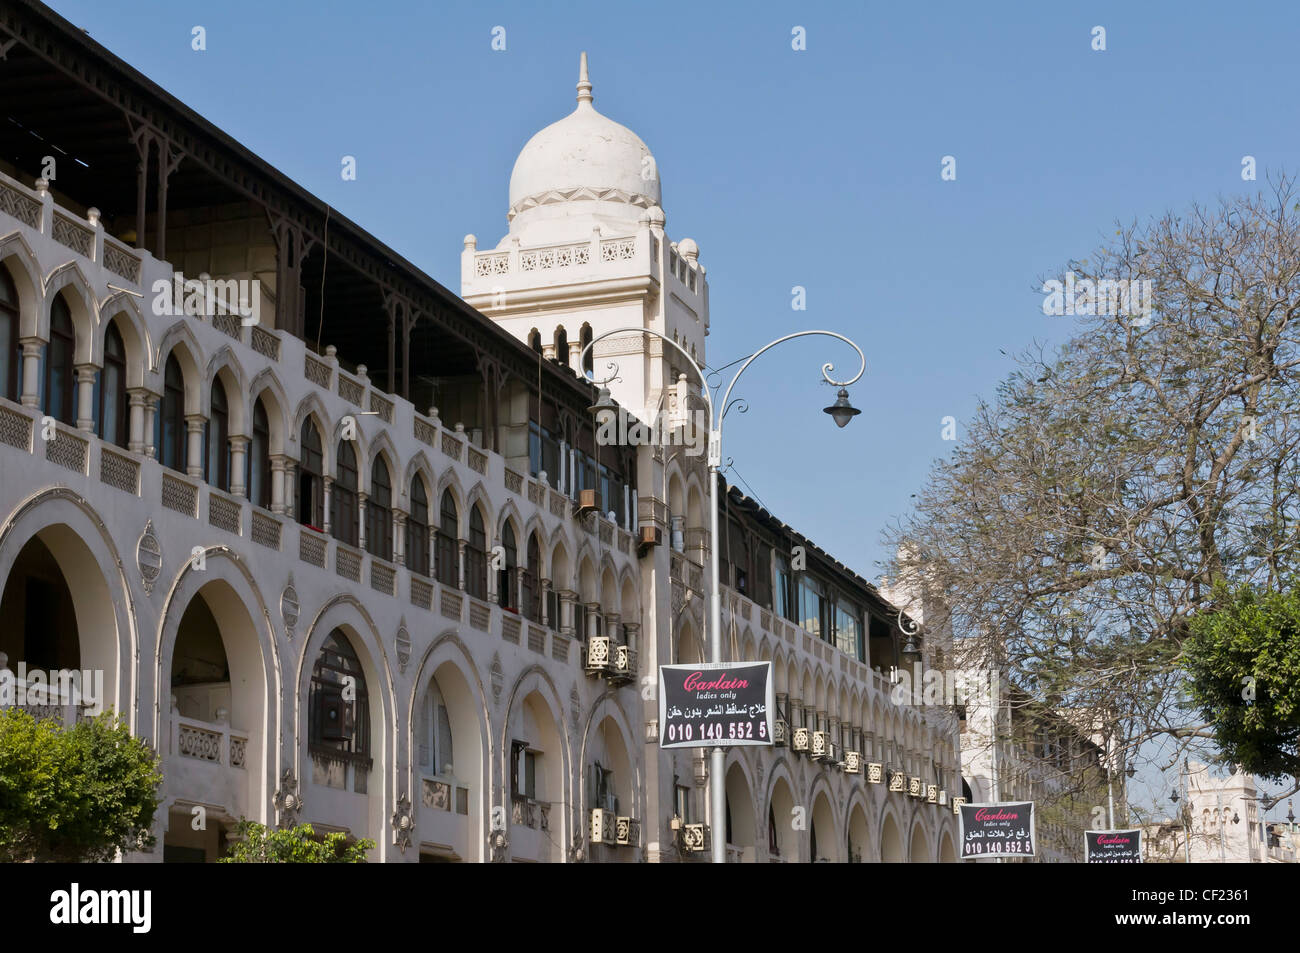 Wealthy Shopping district of Korba Heliopolis Cairo displaying a mix of Oriental & European architectural styles - Stock Image